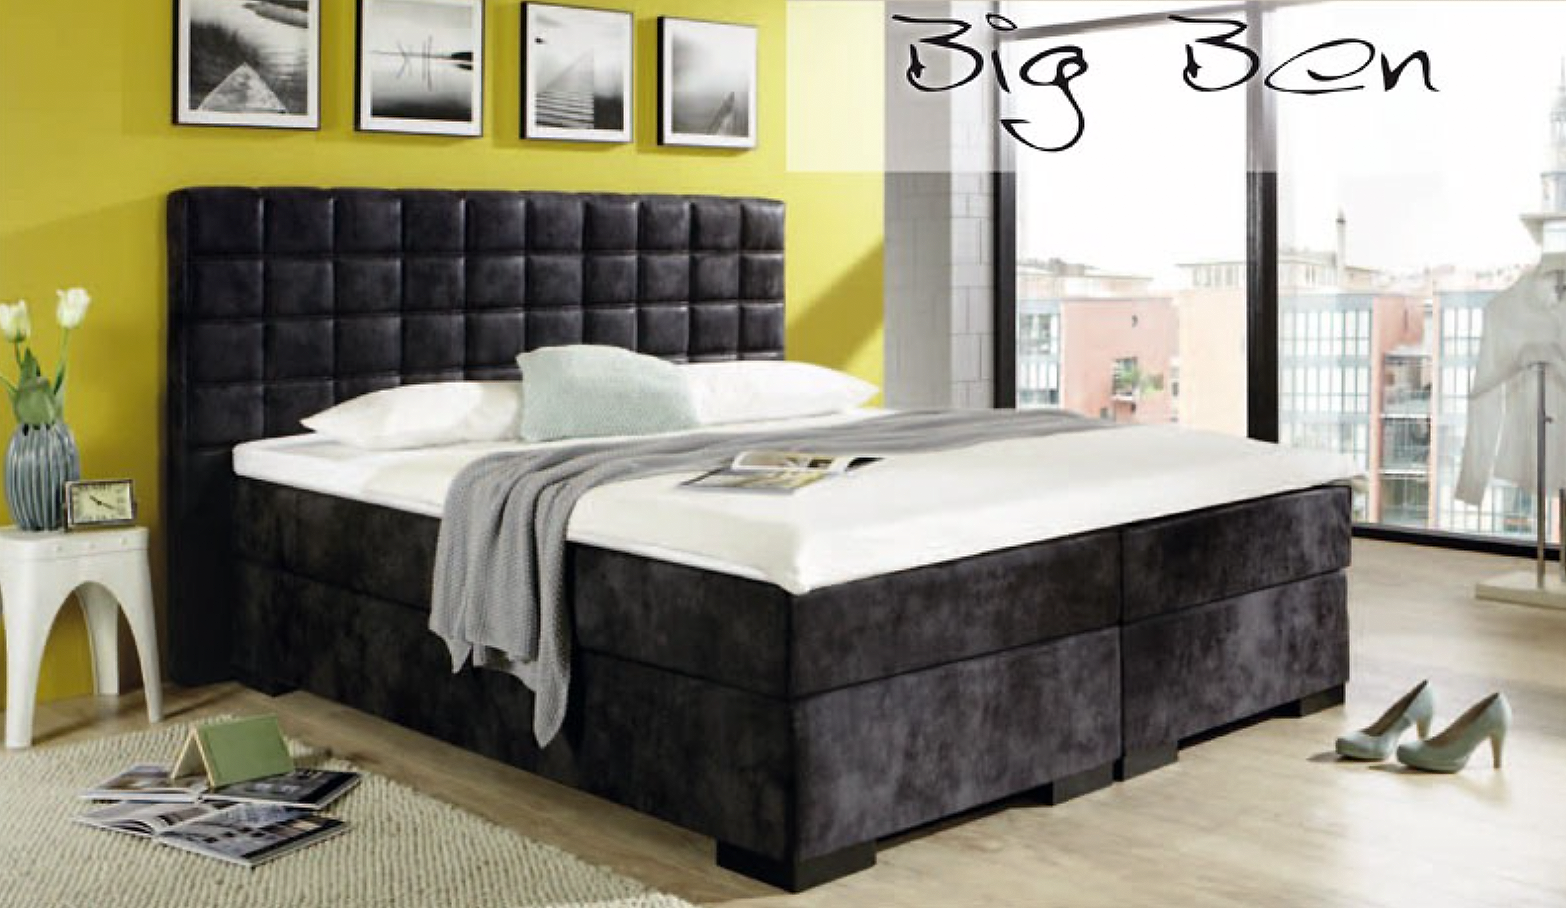 breckle fabrikverkauf hochwertige matratzen und lattenroste outlet und fabrikverkauf in. Black Bedroom Furniture Sets. Home Design Ideas